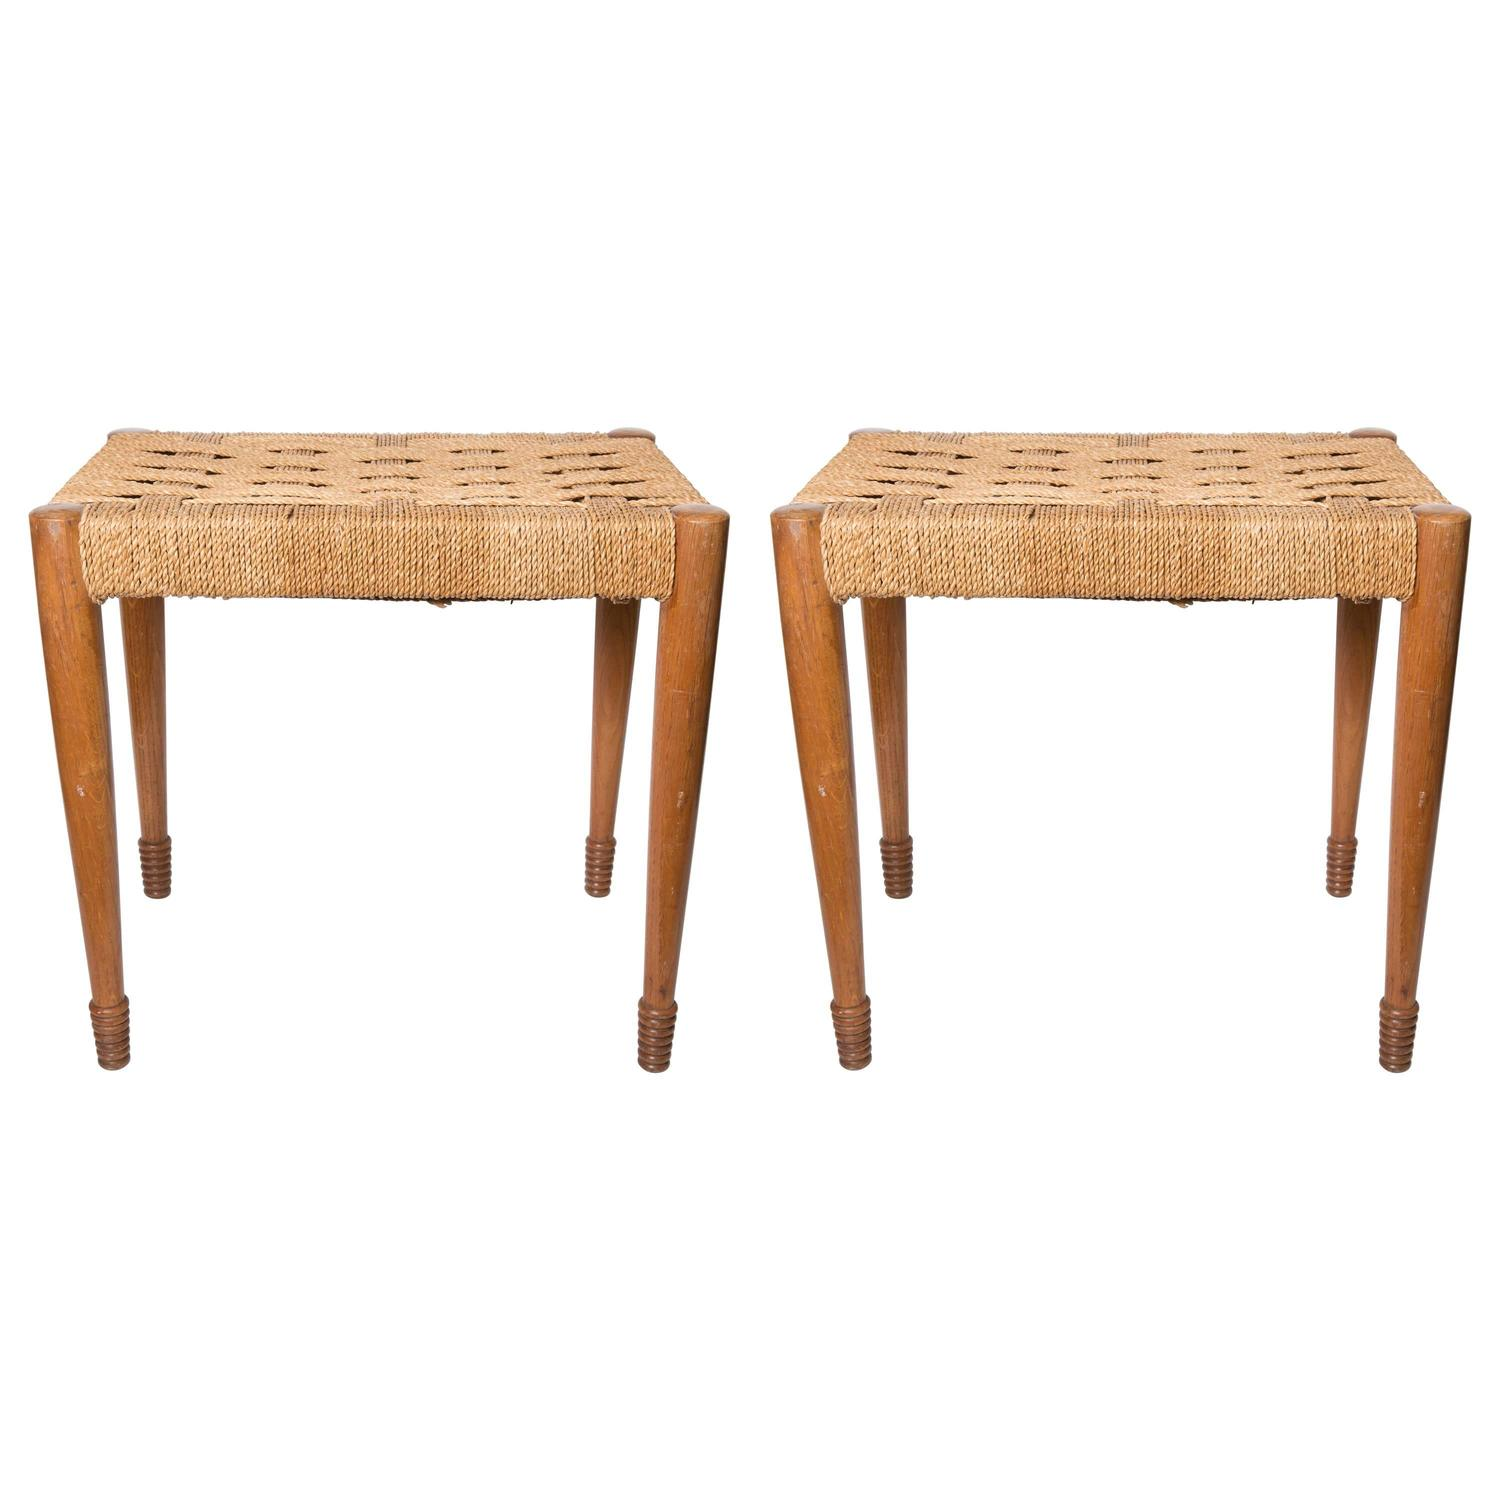 Pair Of Woven Seat Oak Benches At 1stdibs